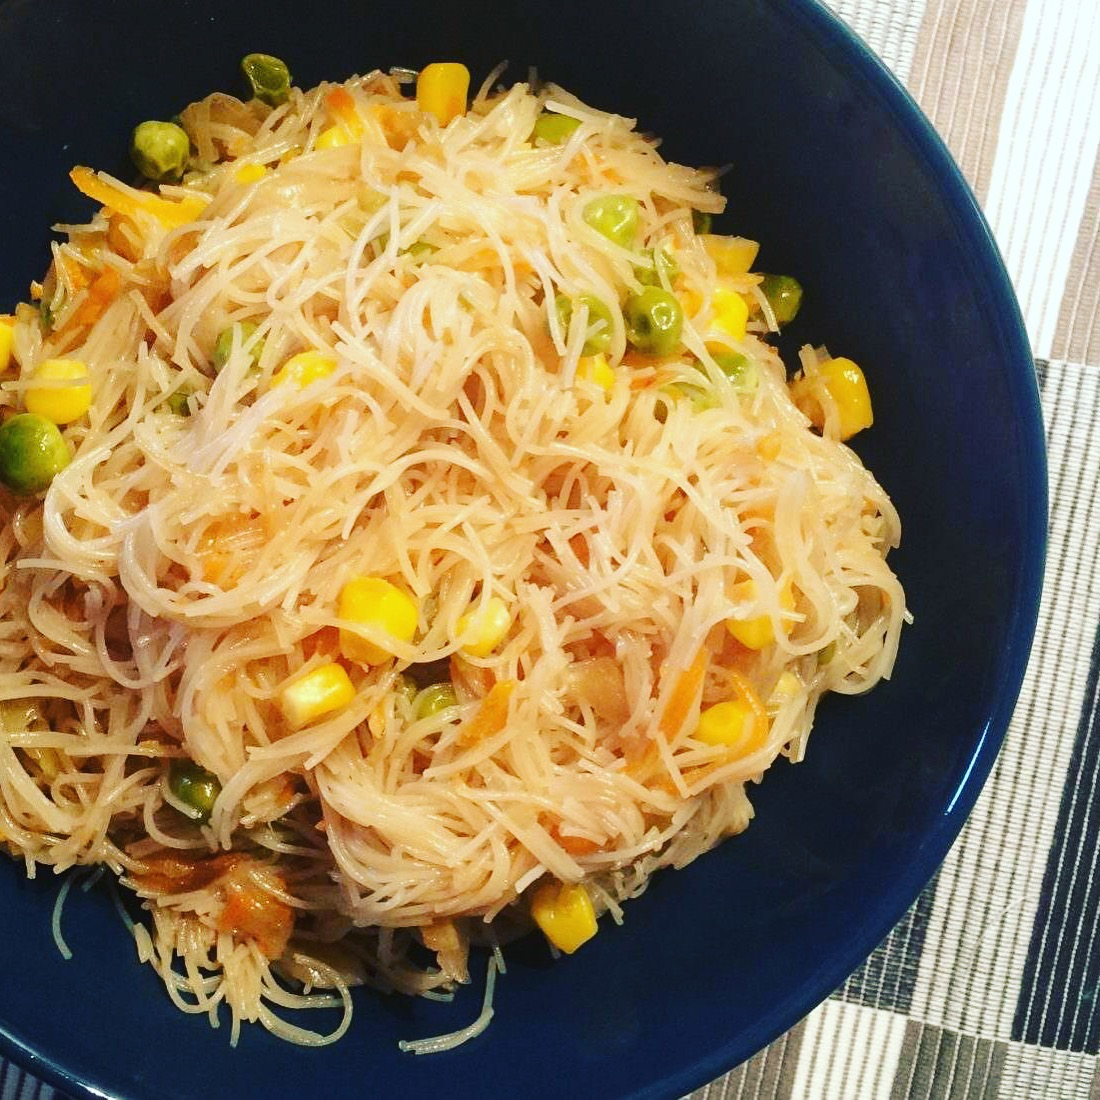 Features and caloric content: rice noodles